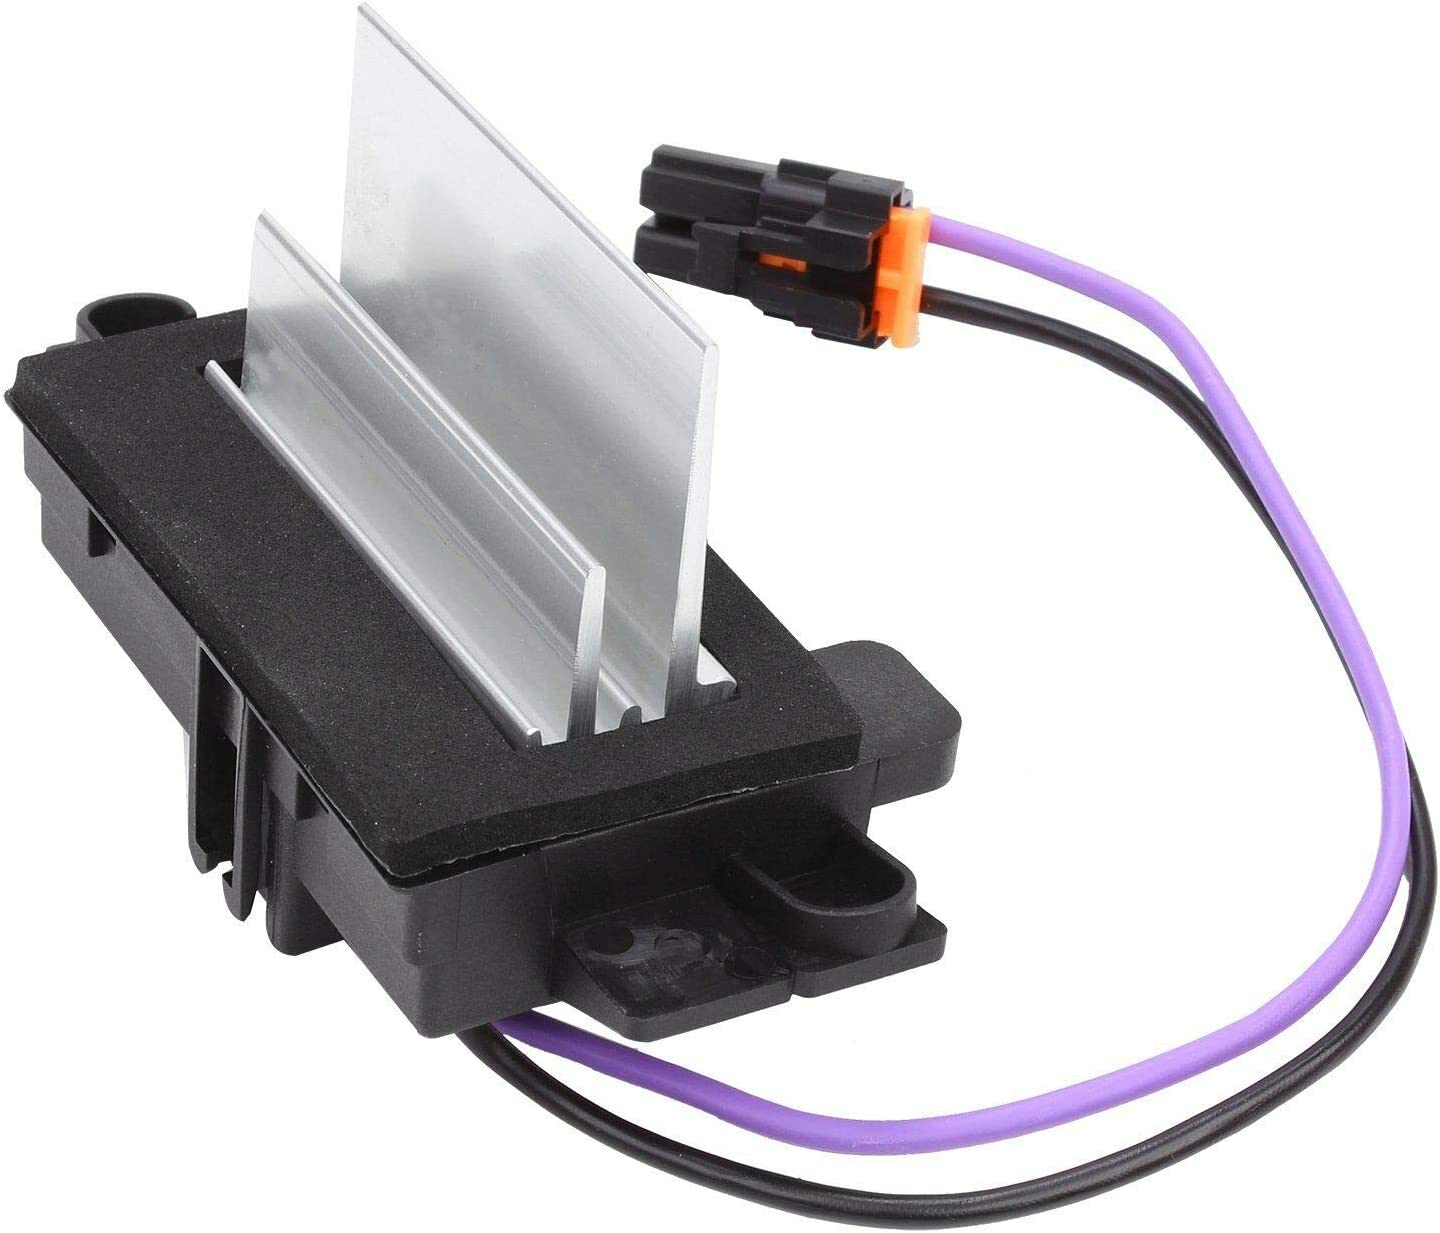 Heater Blower Motor Resistor Compatible with 2003-2006 GMC GM Chevy Buick Cadillac 4P1516 MT1805 RU-631 JA1639 BMR34